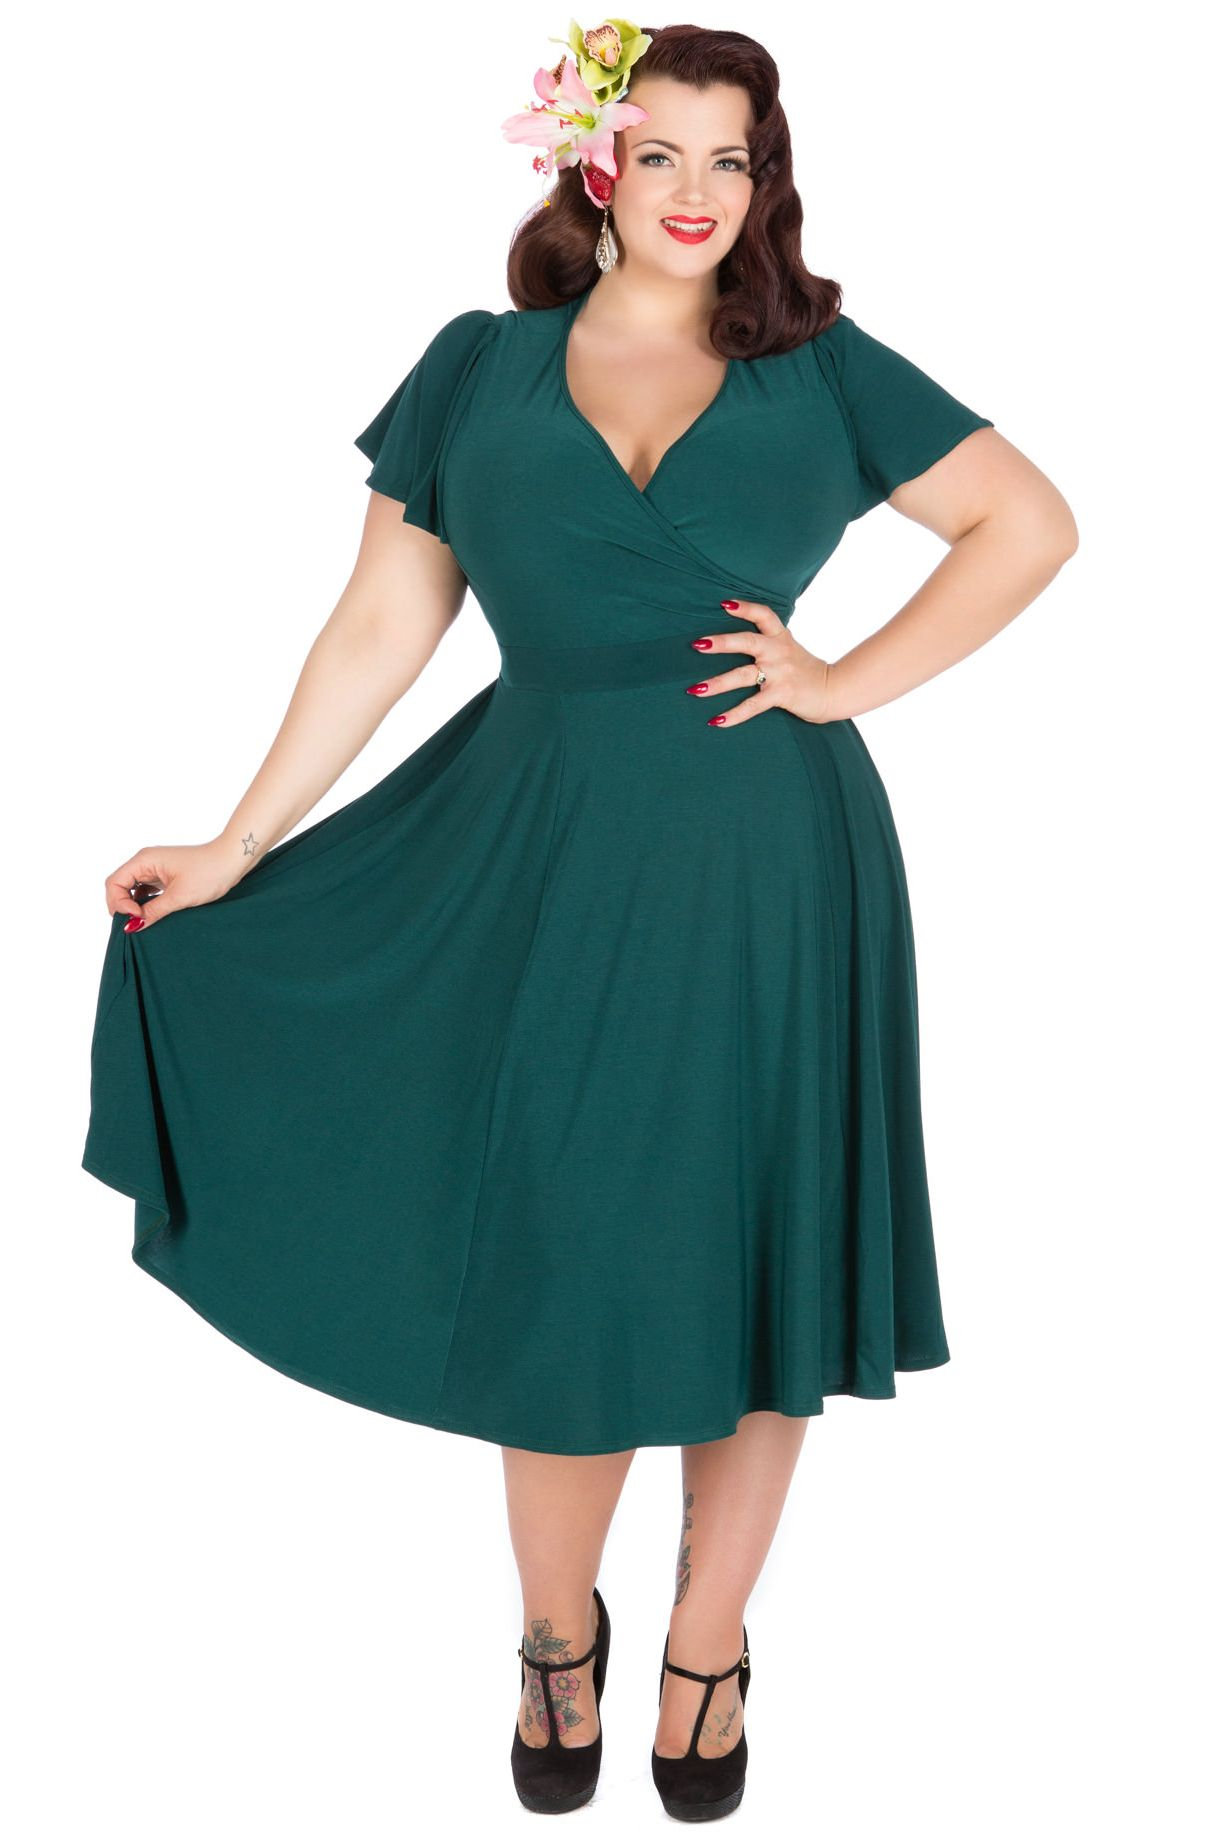 Teal Lyra Dress | Vintage style dresses, Georgina horne and Dress ...